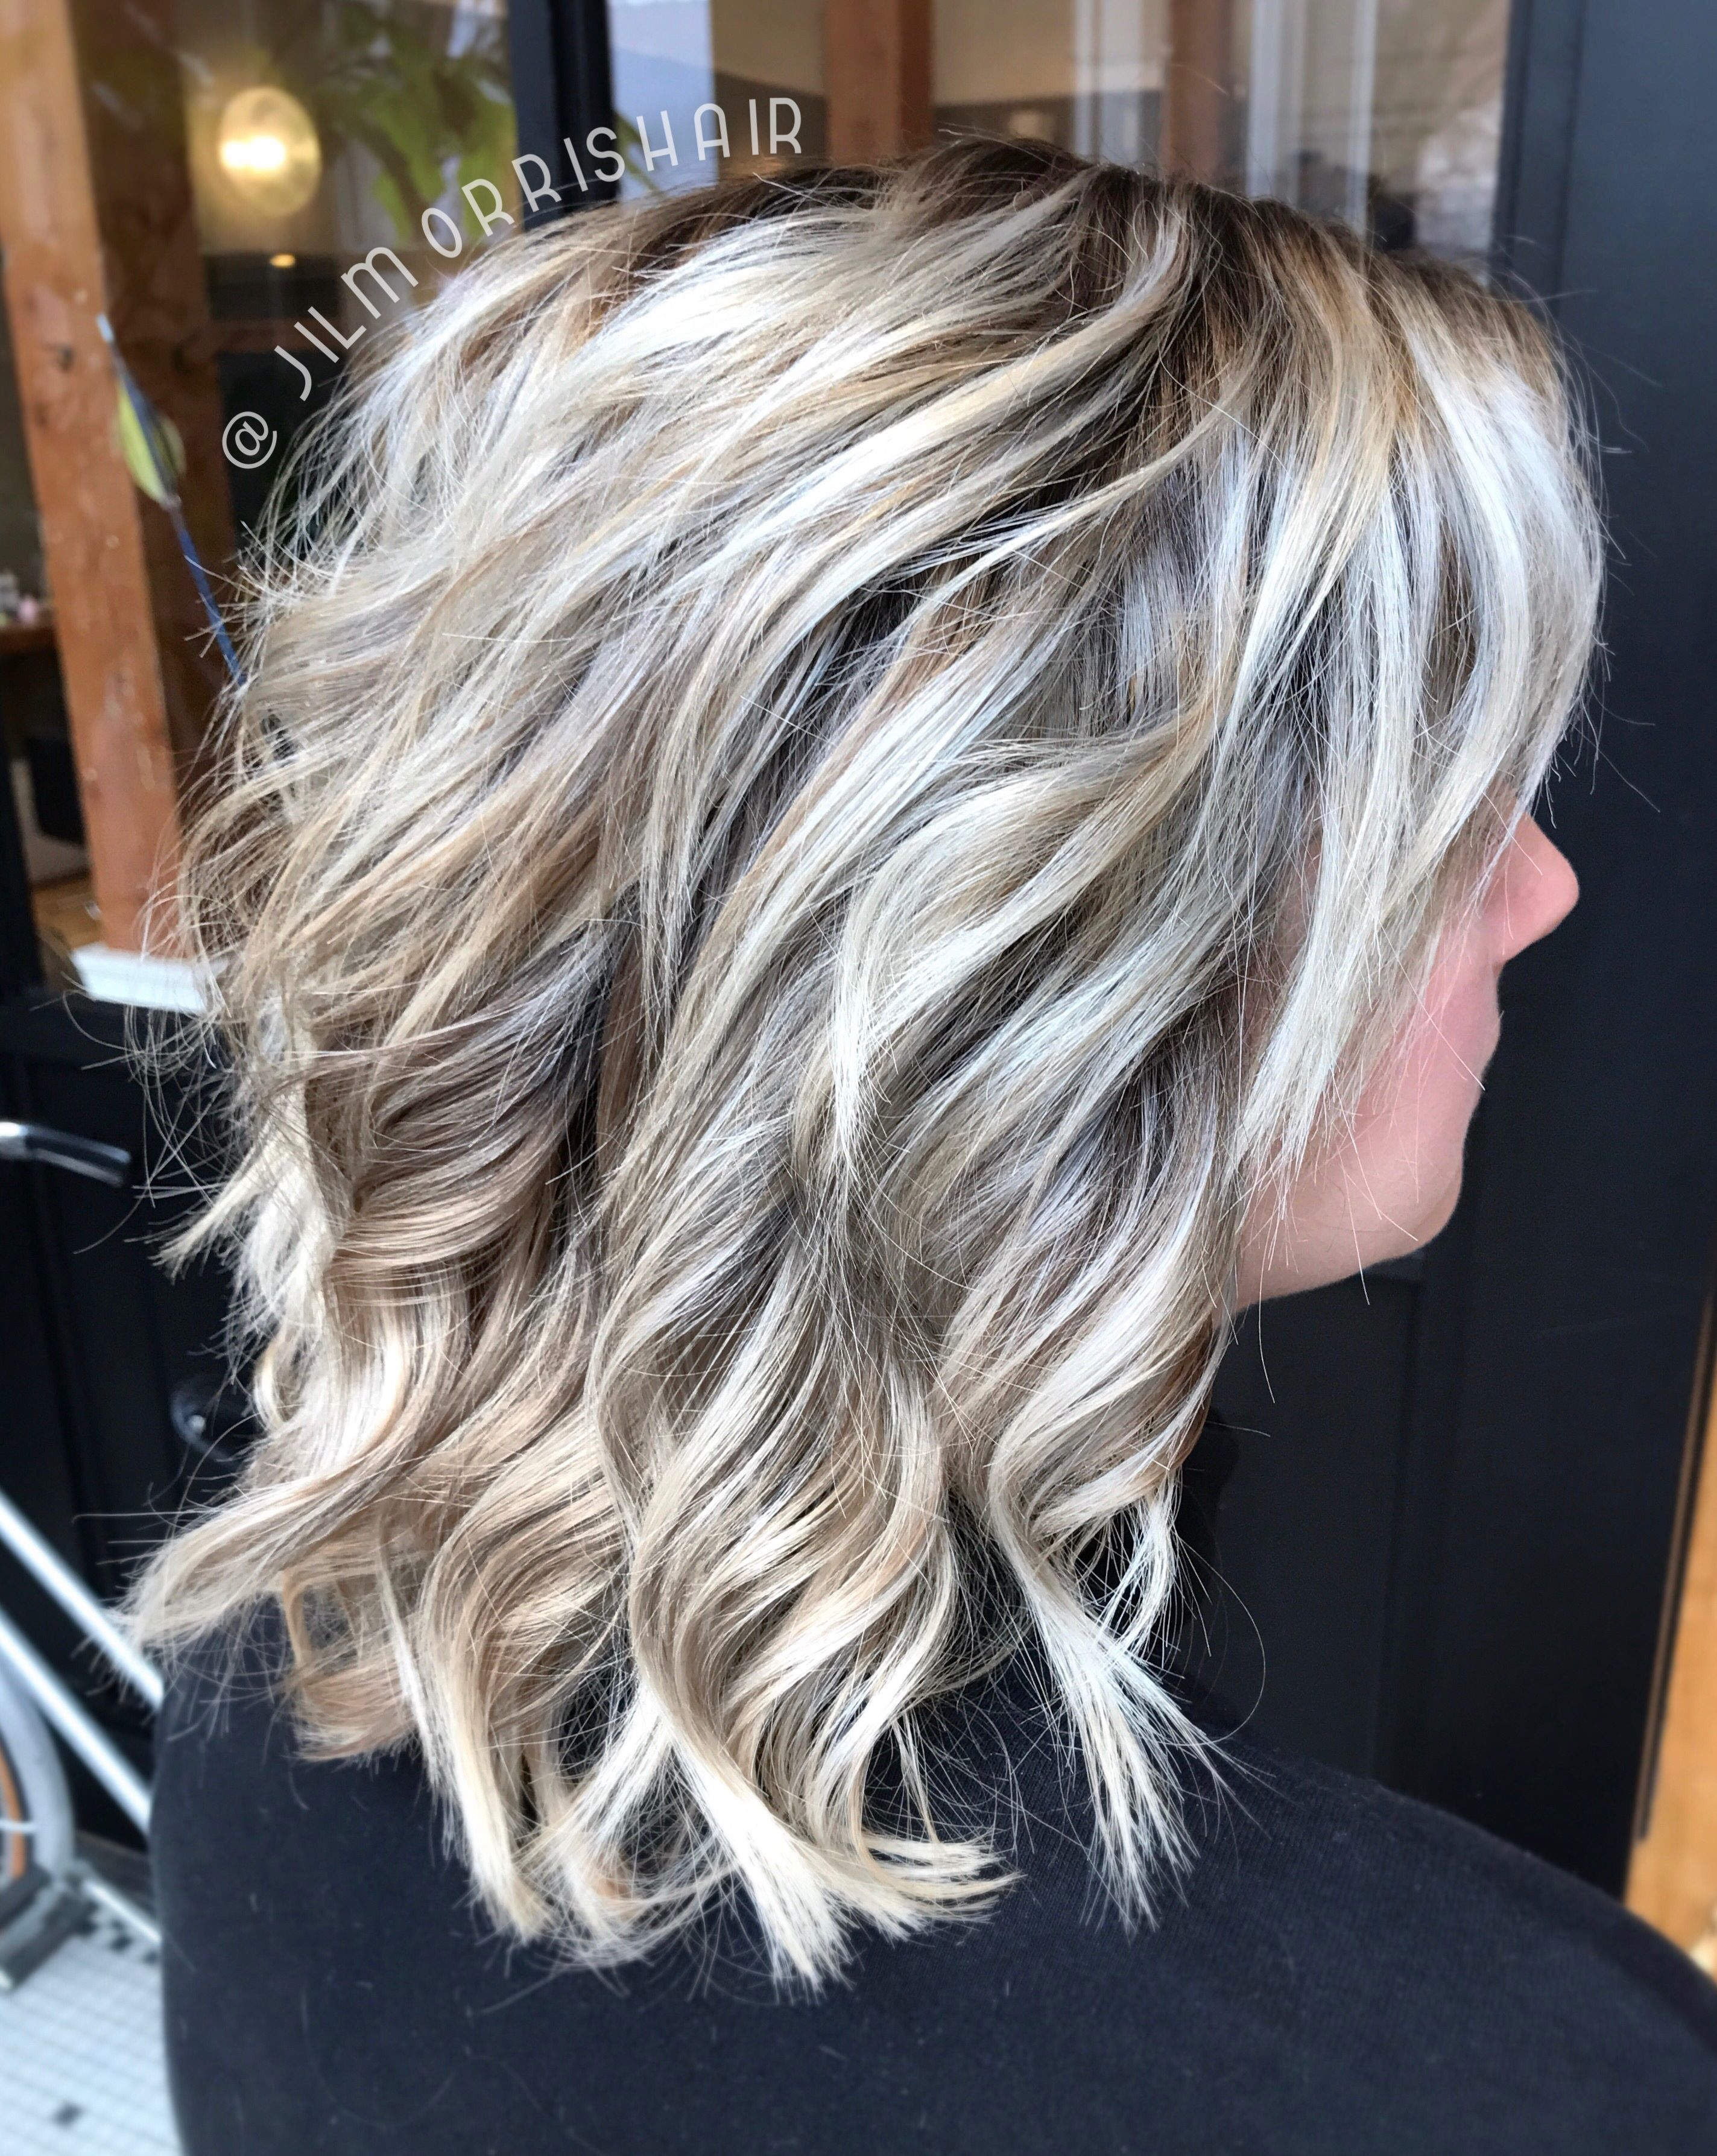 Icy White Balayage Blonde Highlights With An Ashy Shadow Root